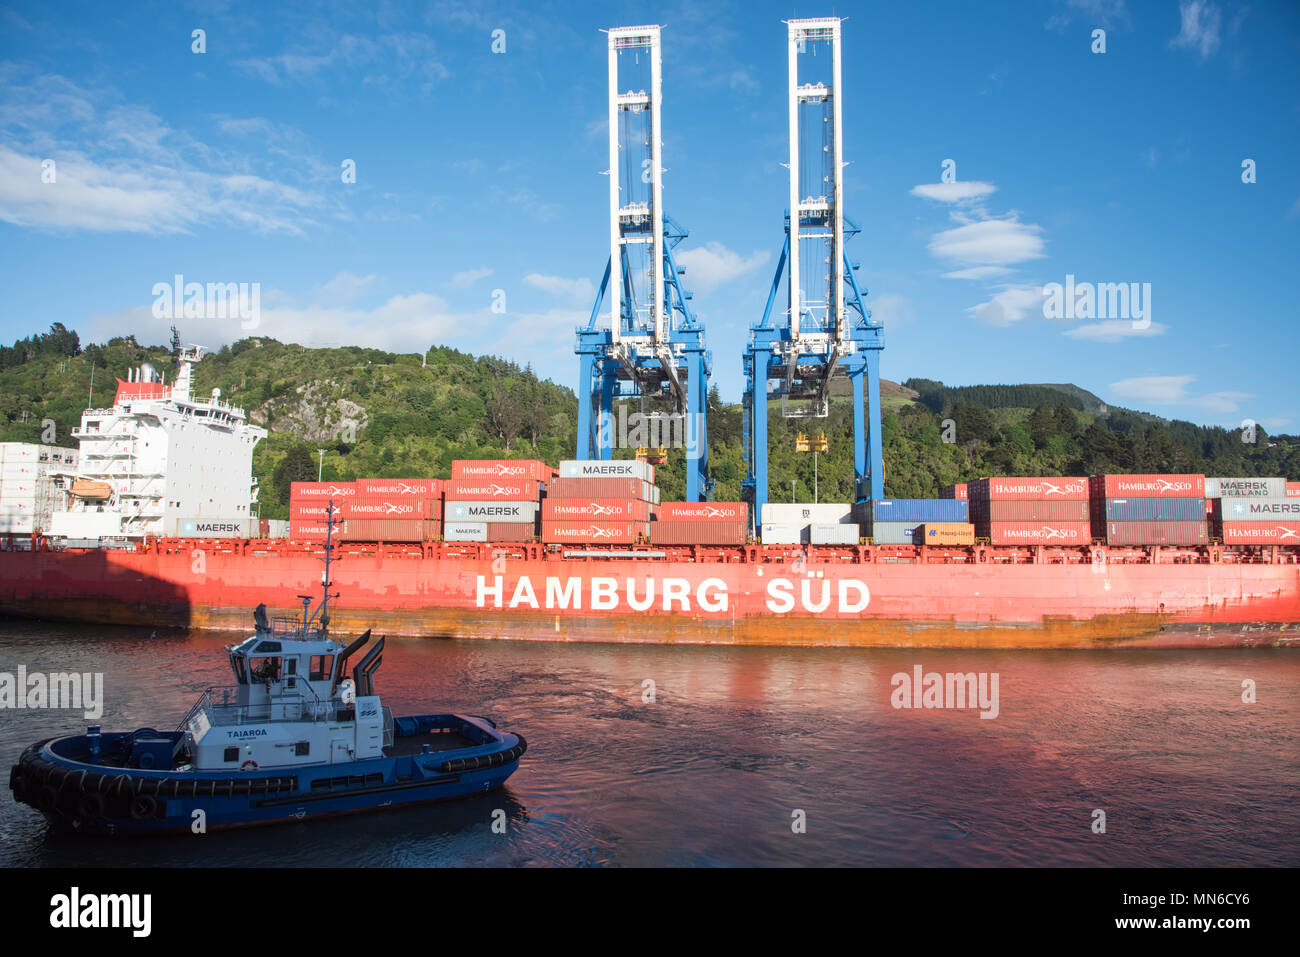 Dunedin, Otago, New Zealand-December 11,2016: Nautical vessel, cargo containers and gantry cranes at Port Chalmers in Dunedin, New Zealand - Stock Image